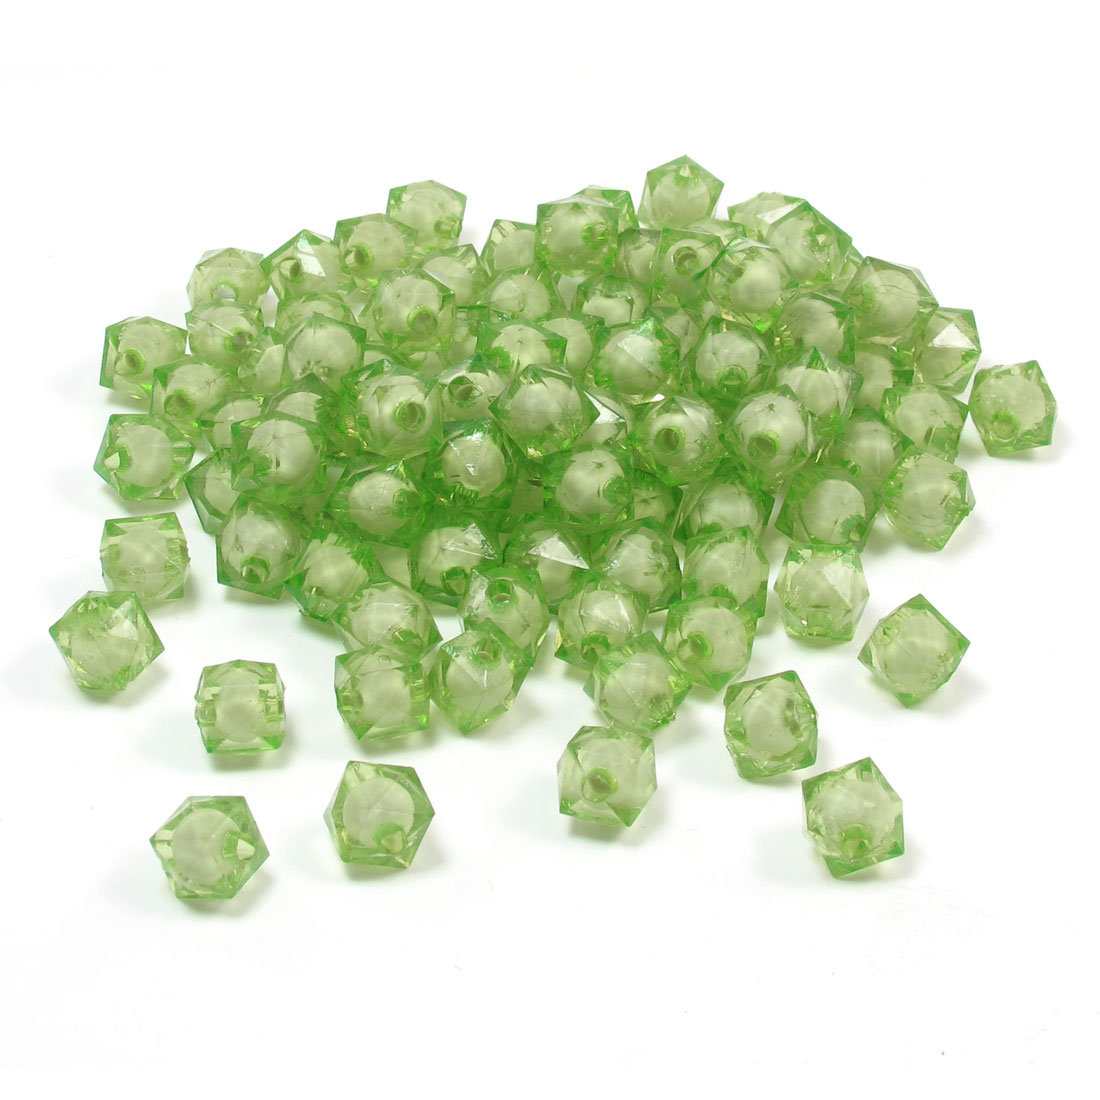 Bulk DIY Handcraft Plastic Green Square Shaped Faceted Beads 194 Pcs